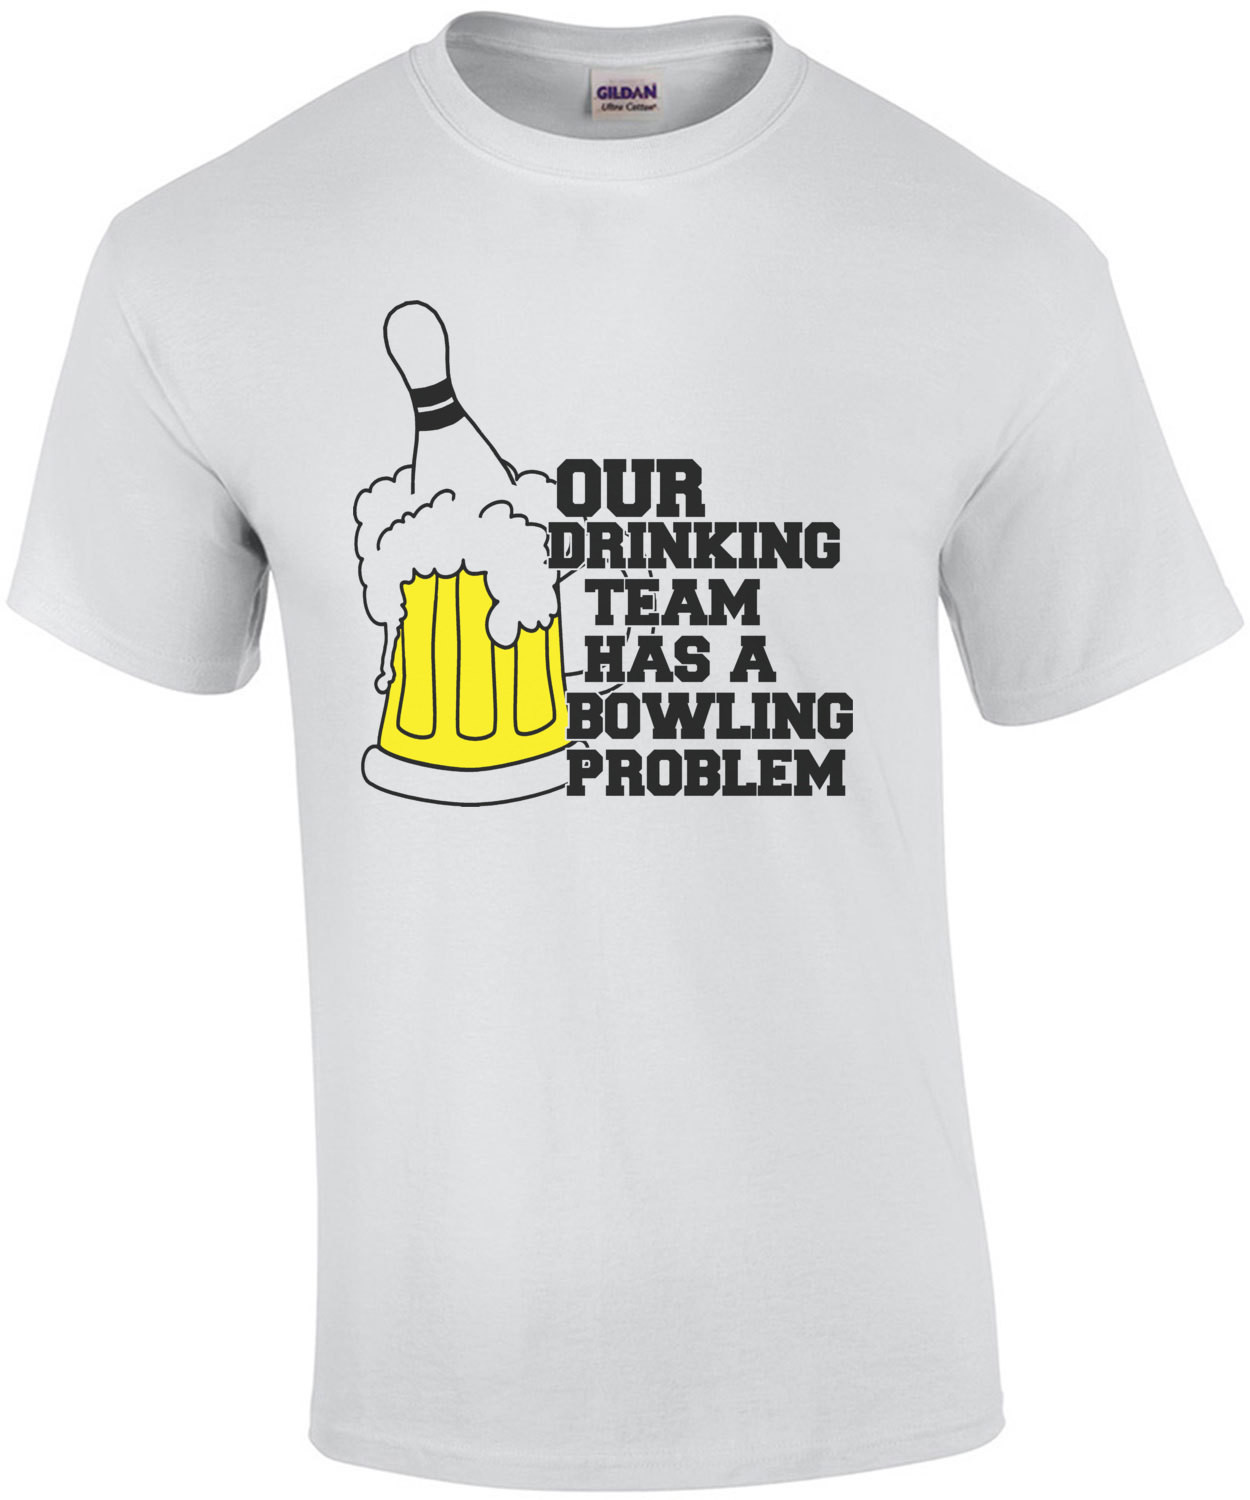 Our Drinking Team Has A Bowling Problem T-Shirt